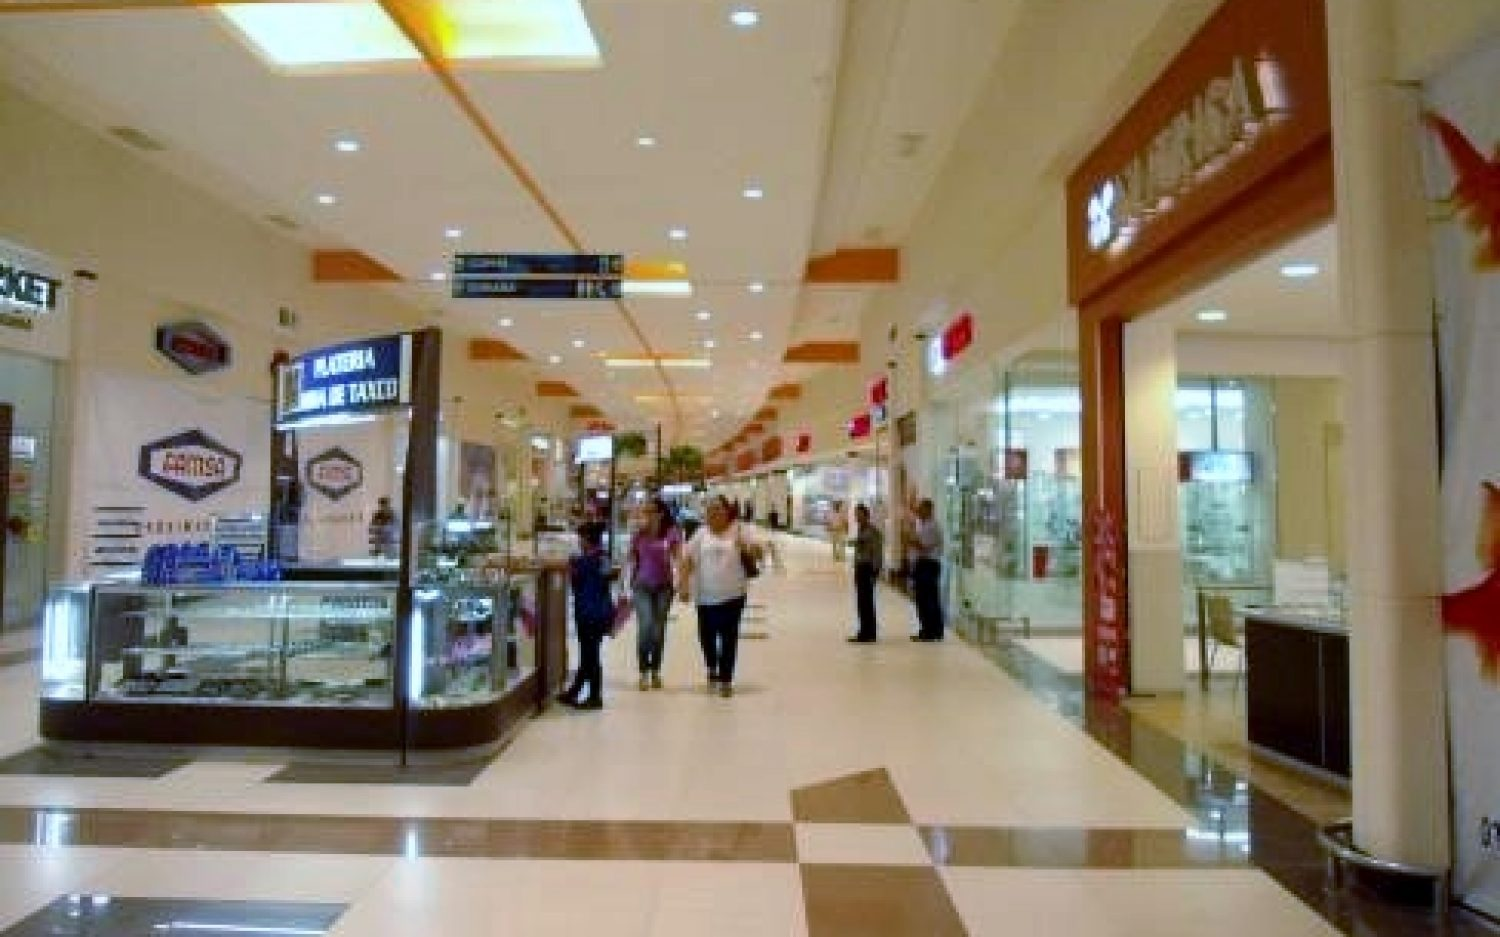 Co-Plaza Sendero Villahermosa (45)